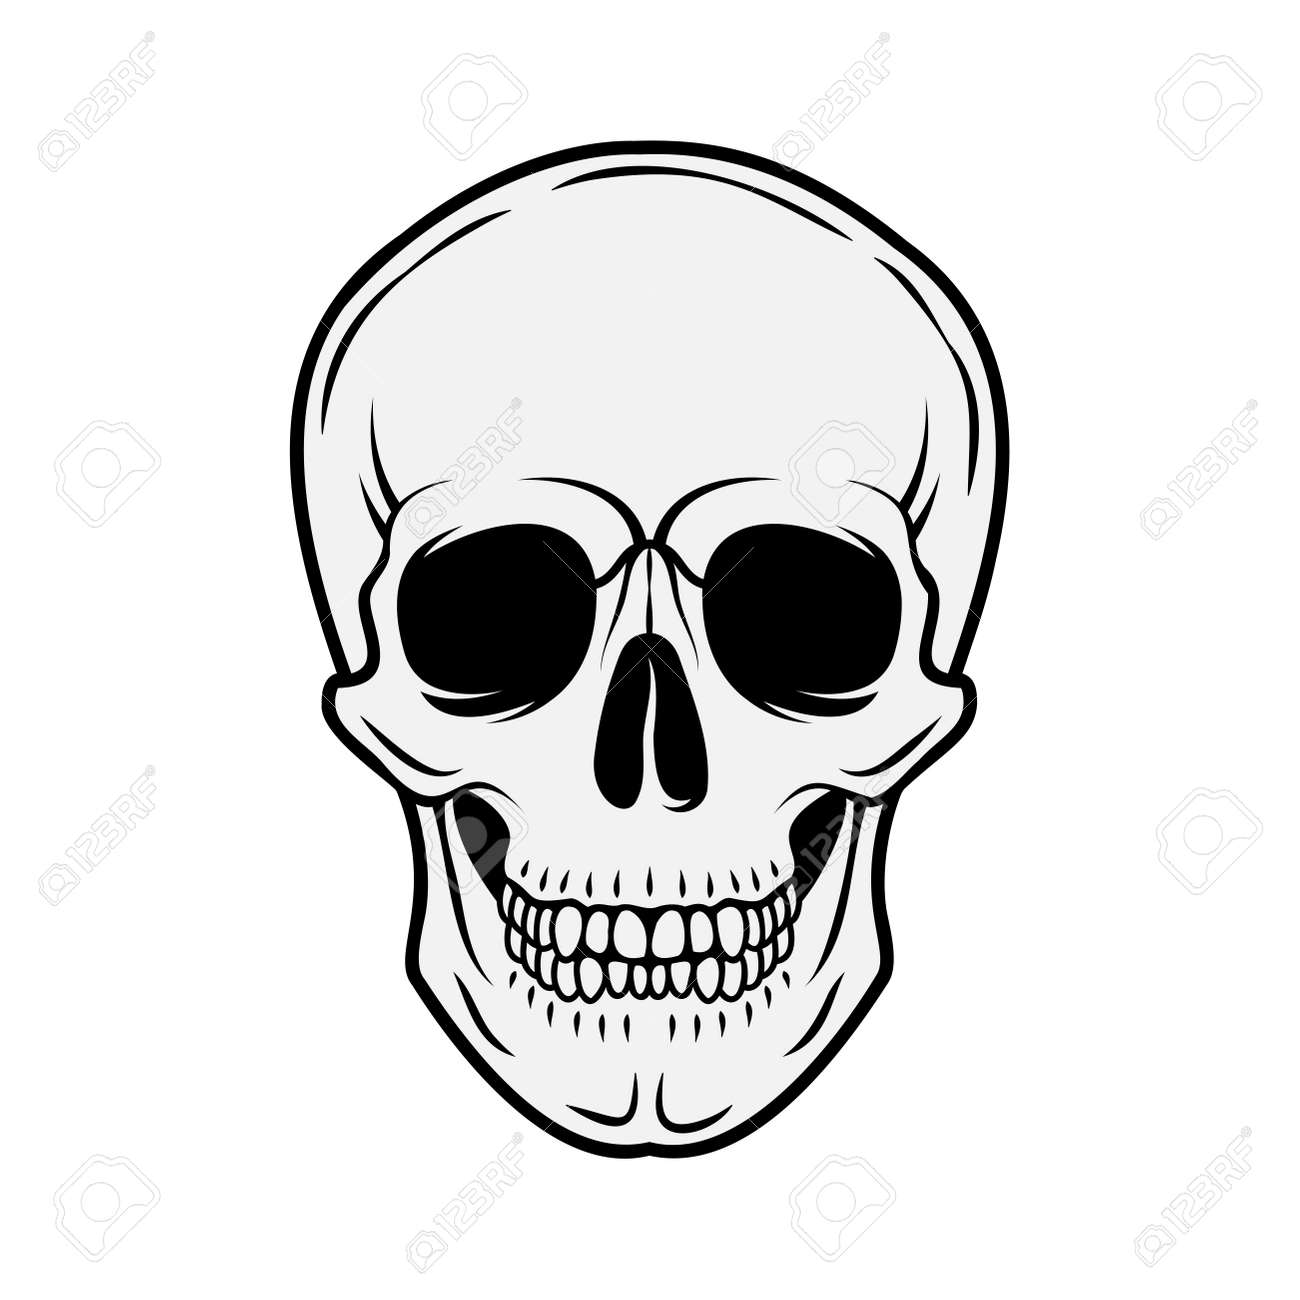 Human skull. Front view. Vector black and white hand drawn illustration isolated on white background - 165845613